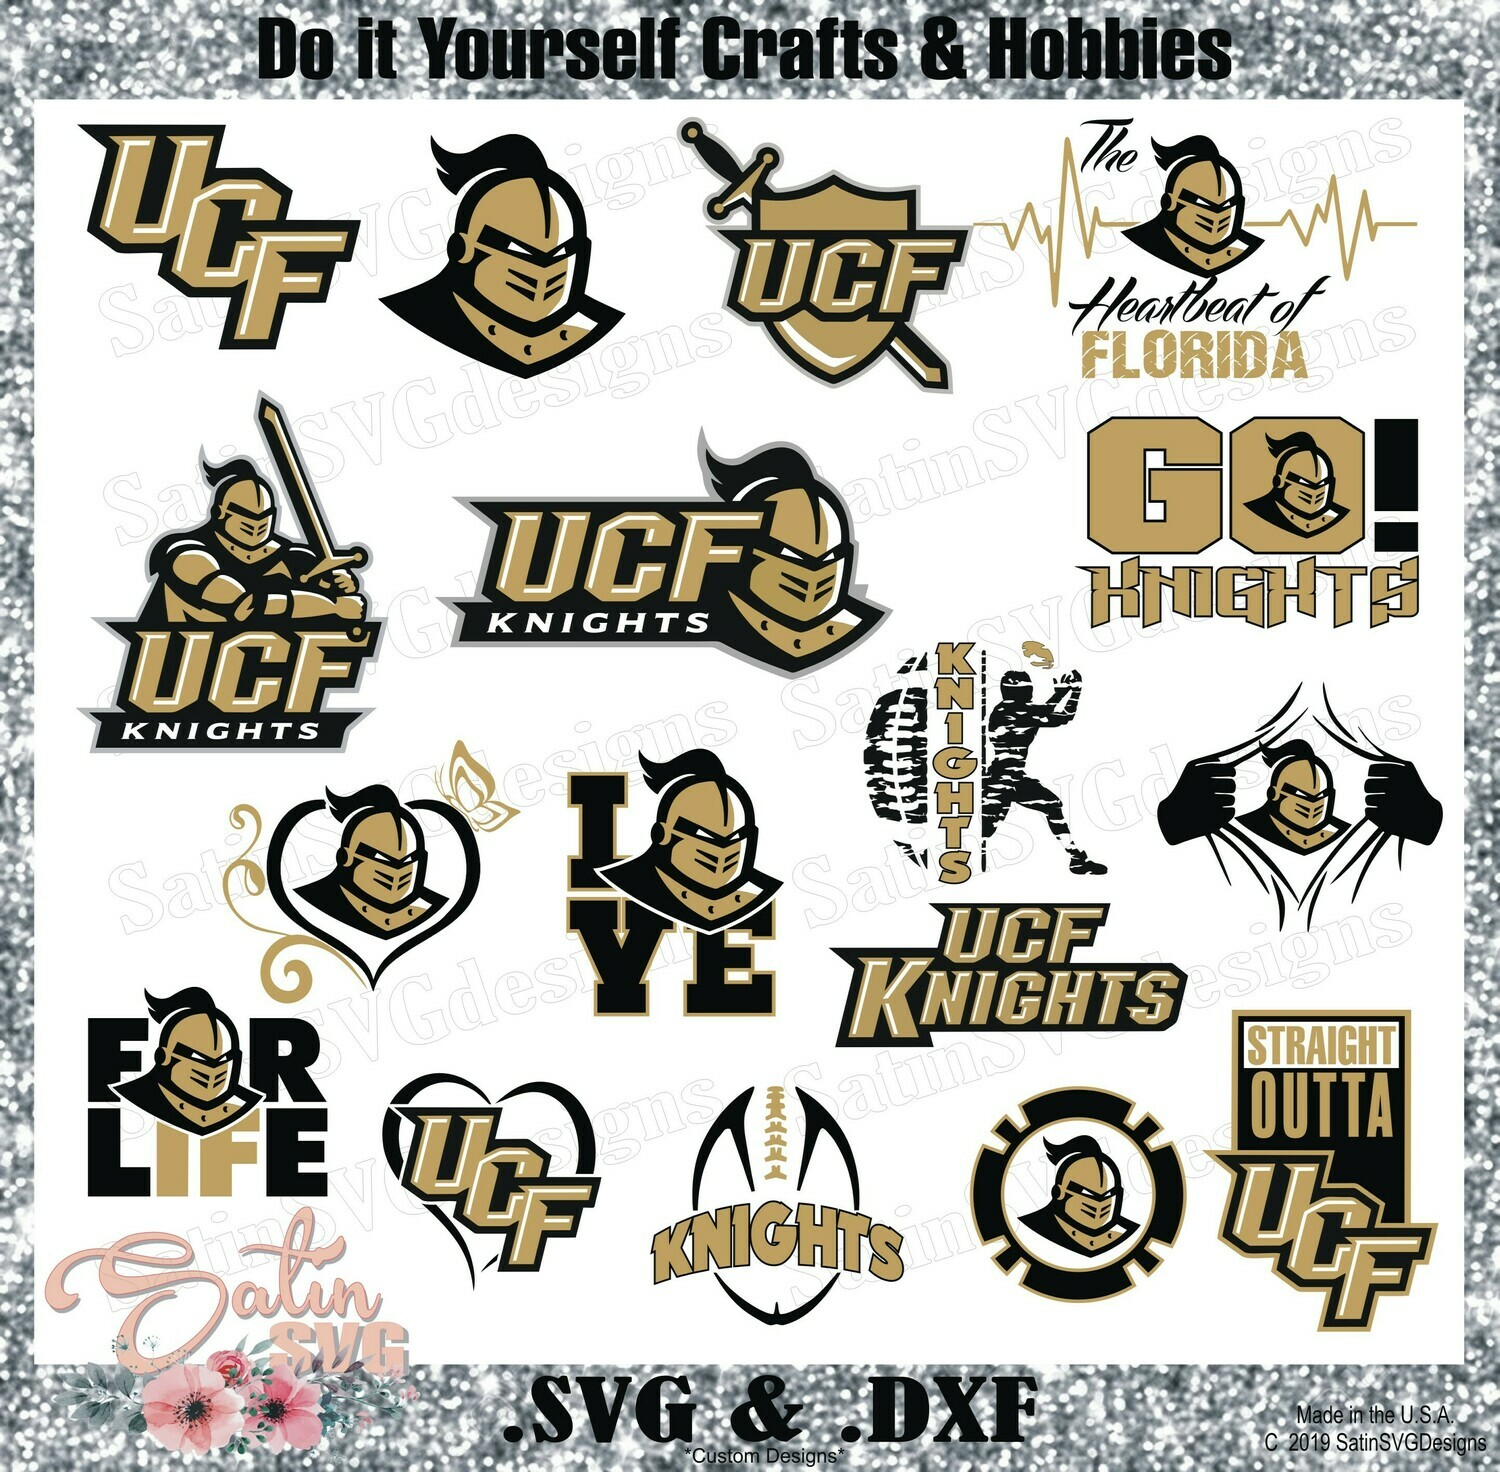 UCF Knights NEW Custom Central Florida University Designs. SVG Files, Cricut, Silhouette Studio, Digital Cut Files, Infusible Ink